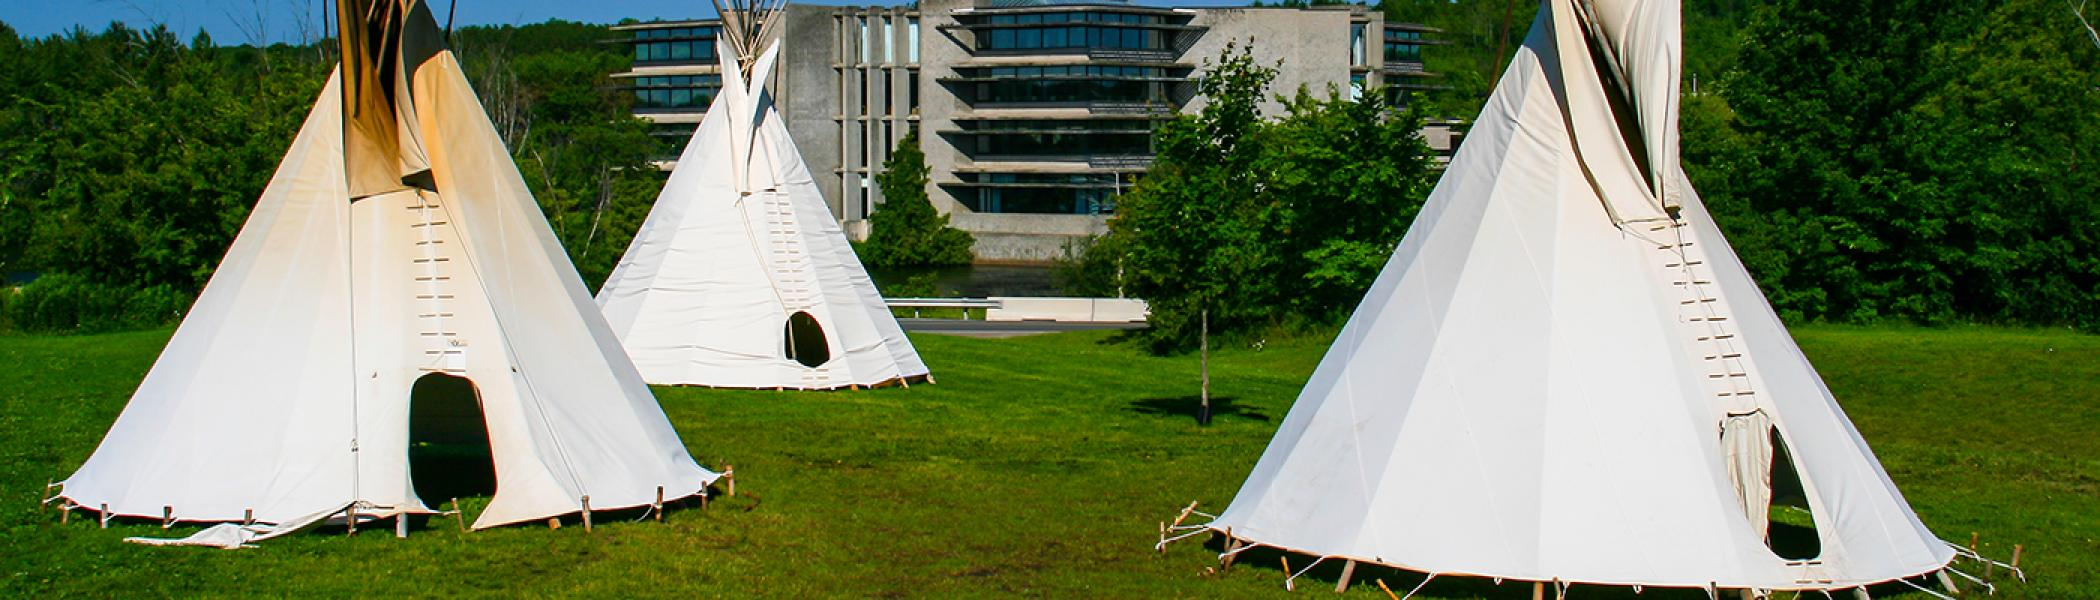 3 Tipis set on a grassy hill overlooking the Bata Library in the summer daylight